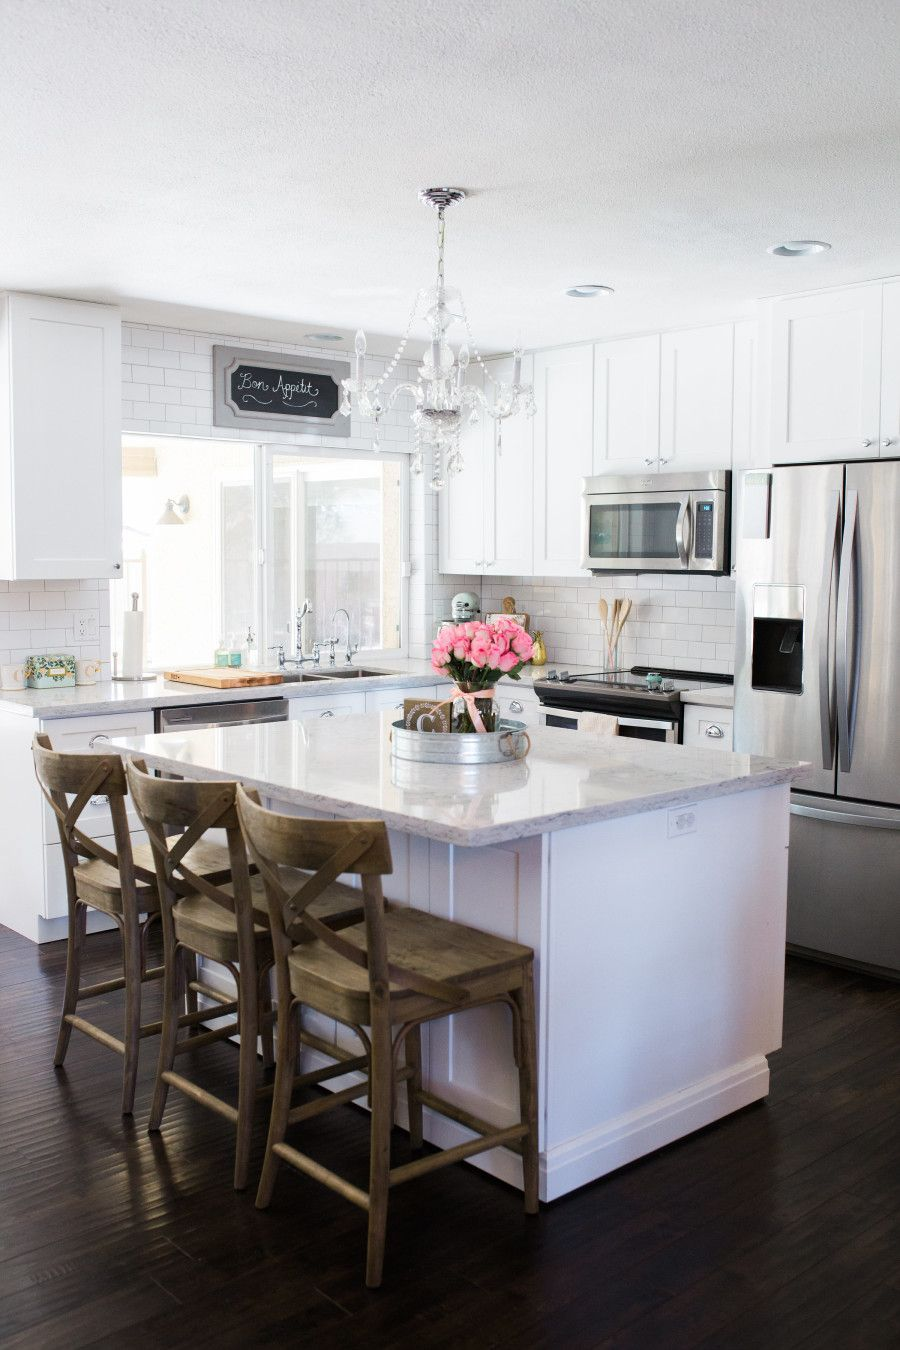 Exceptionnel Kitchen Remodel On A Budget For Under $10,000